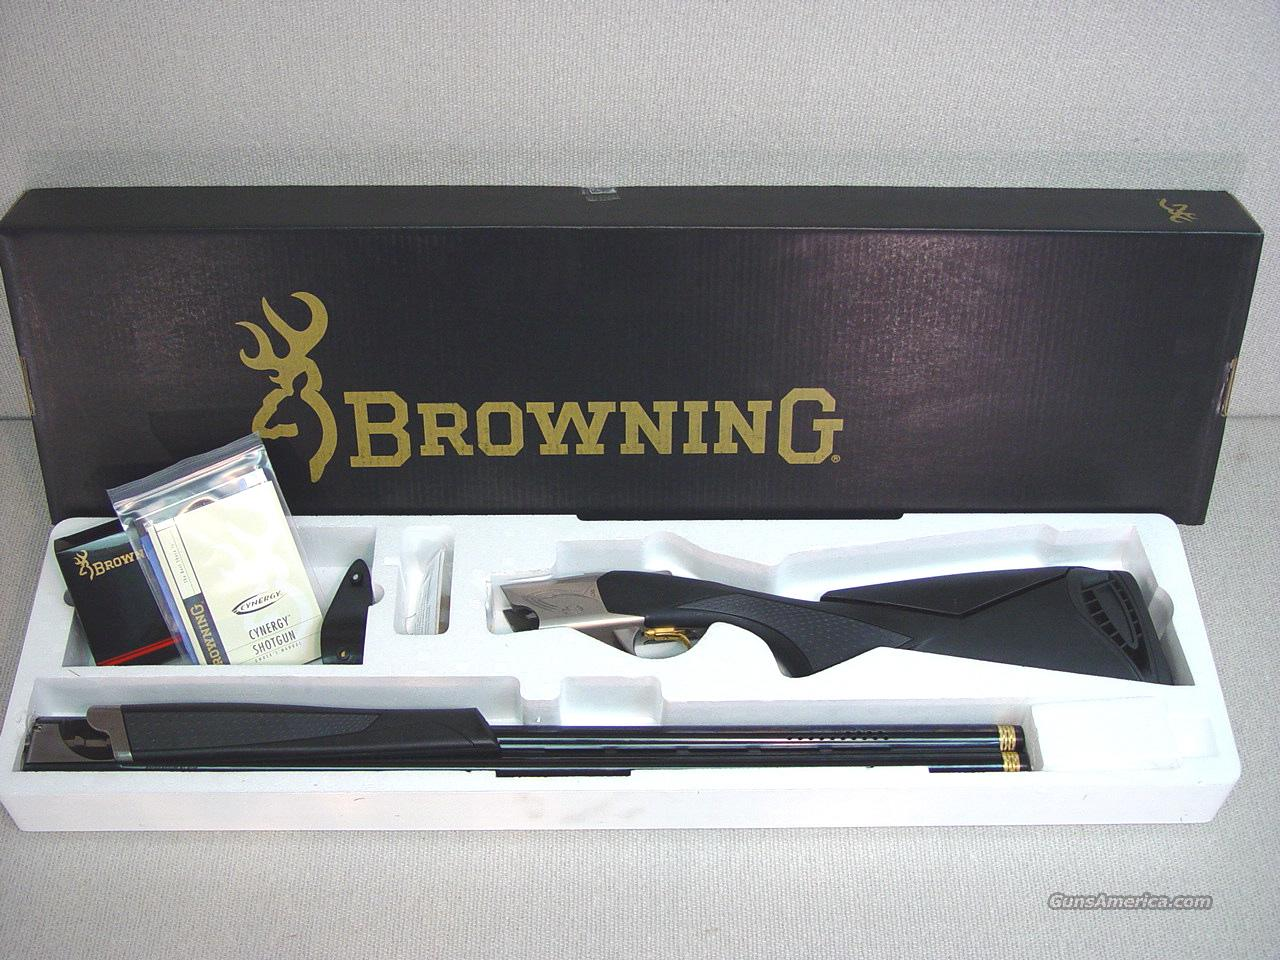 "BROWNING CYNERGY SPORTING ADJUSTABLE COMB-SYNTHETIC 32""  Guns > Shotguns > Browning Shotguns > Over Unders > Cynergy > Hunting"